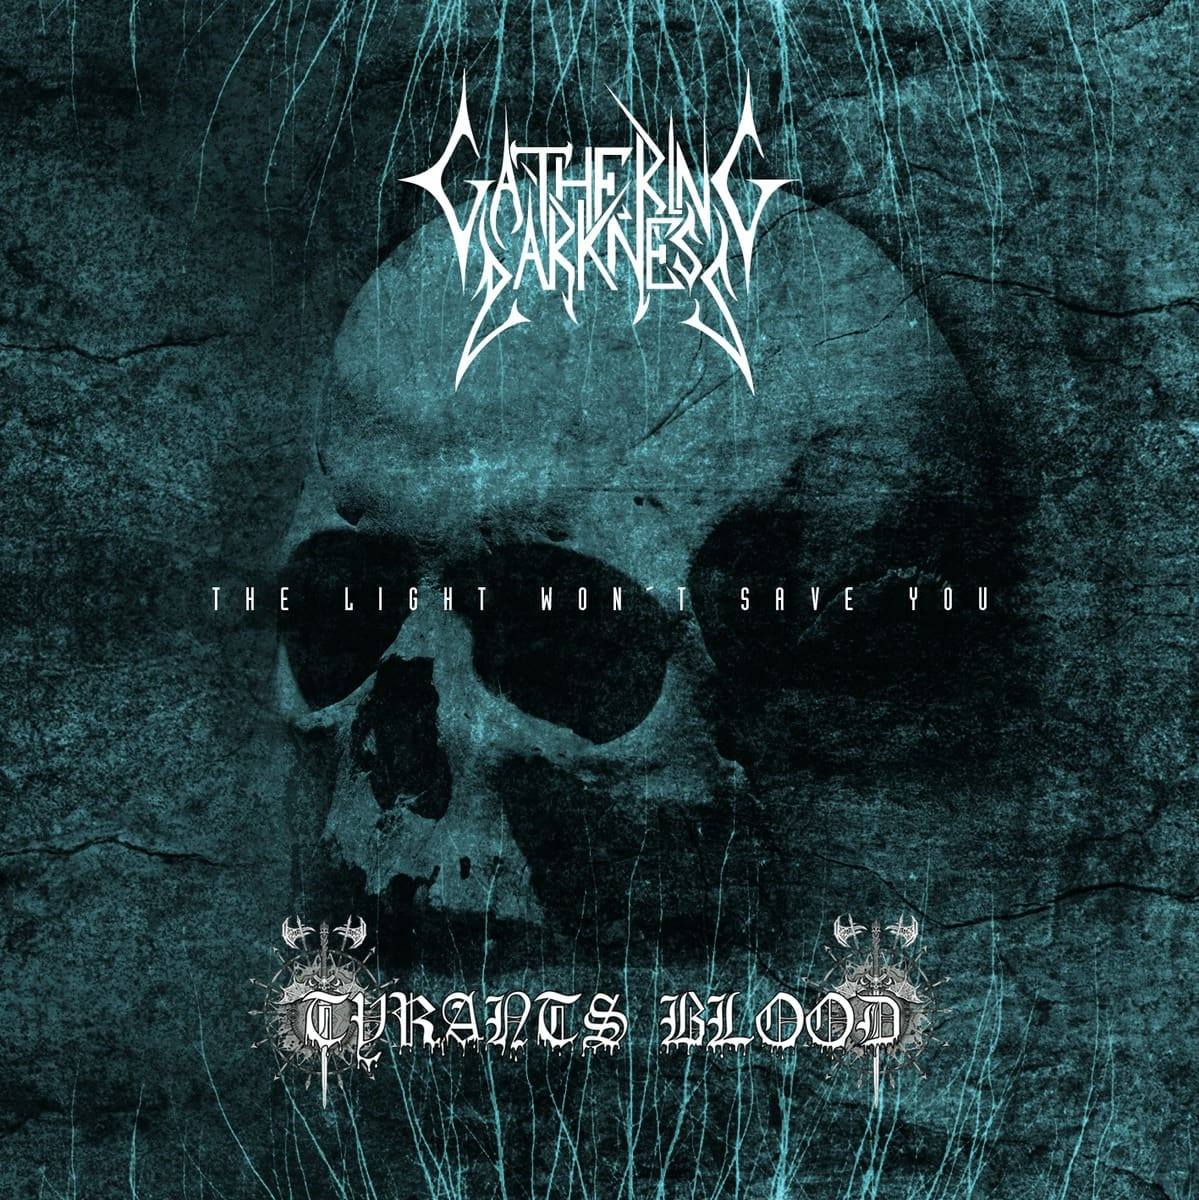 GATHERING DARKNESS/TYRANTS BLOOD (CAN) – The light won't save you, 2014